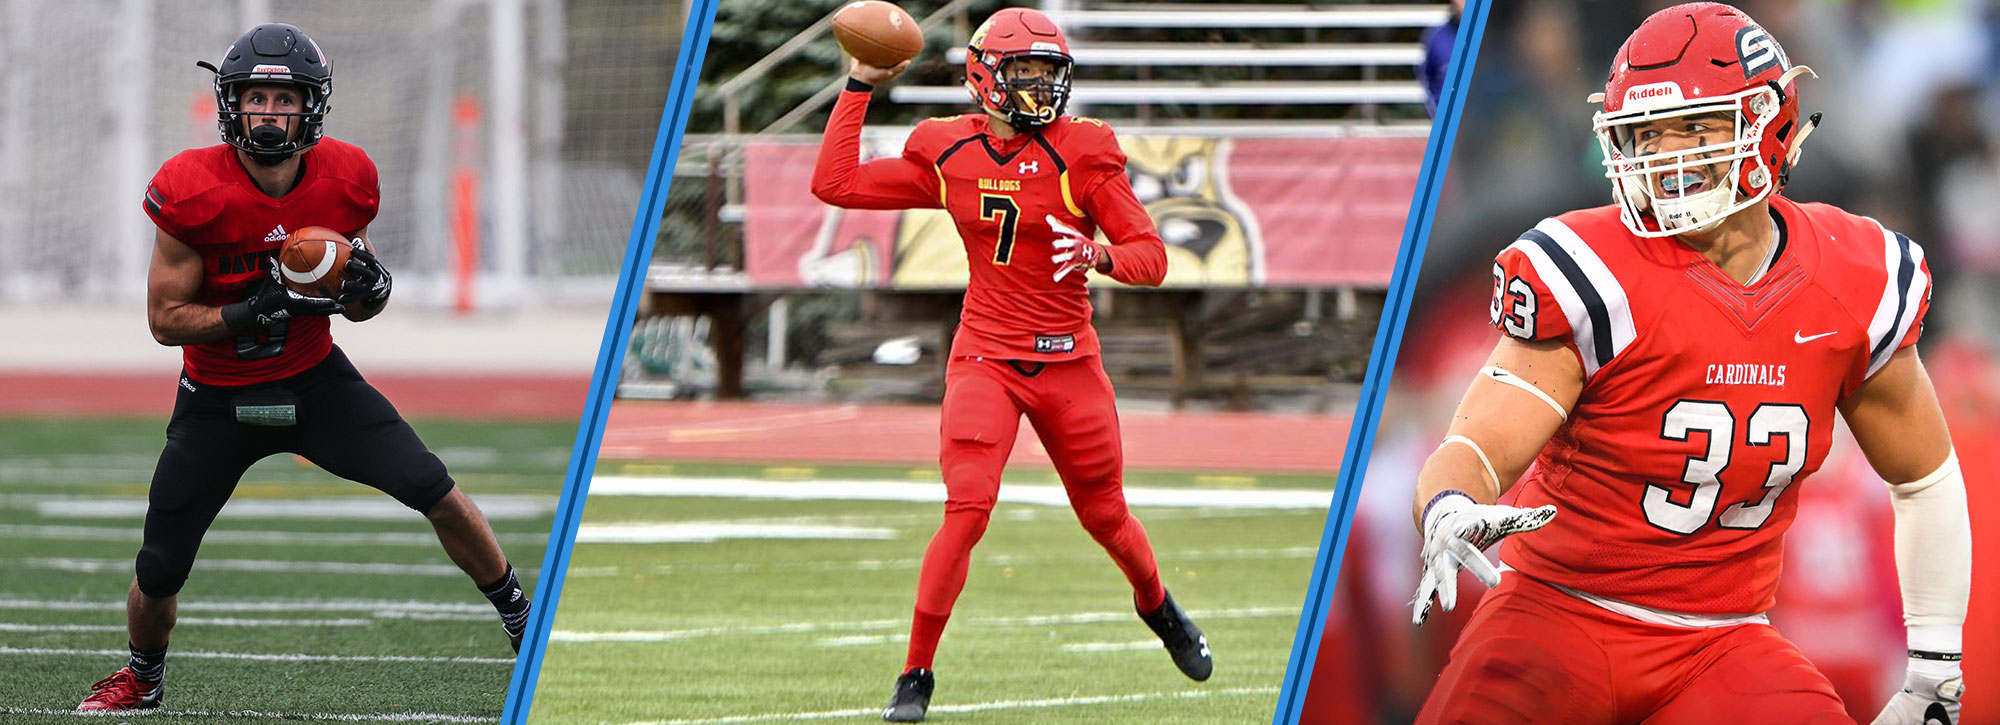 Ferris State's Campbell, Saginaw Valley's Alexander & Davenport's Couturier Honored GLIAC Football Players of the Week